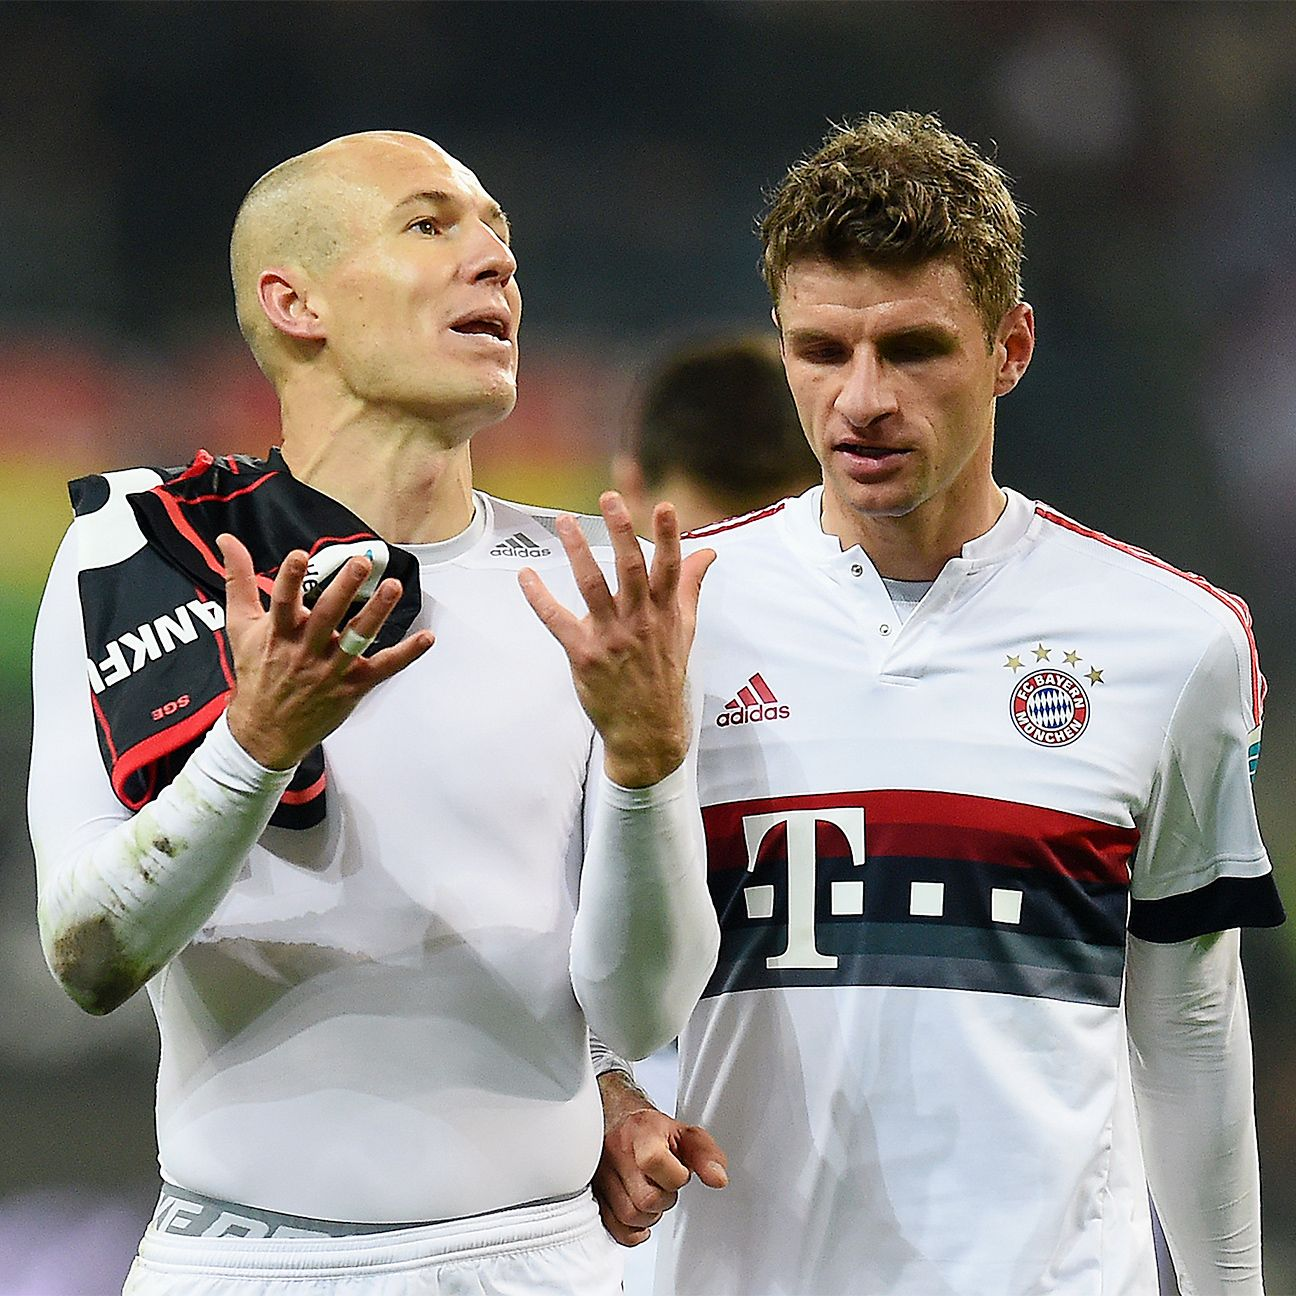 Arjen Robben and Bayern Munich lacked the finishing touch on Friday night against Eintracht Frankfurt.